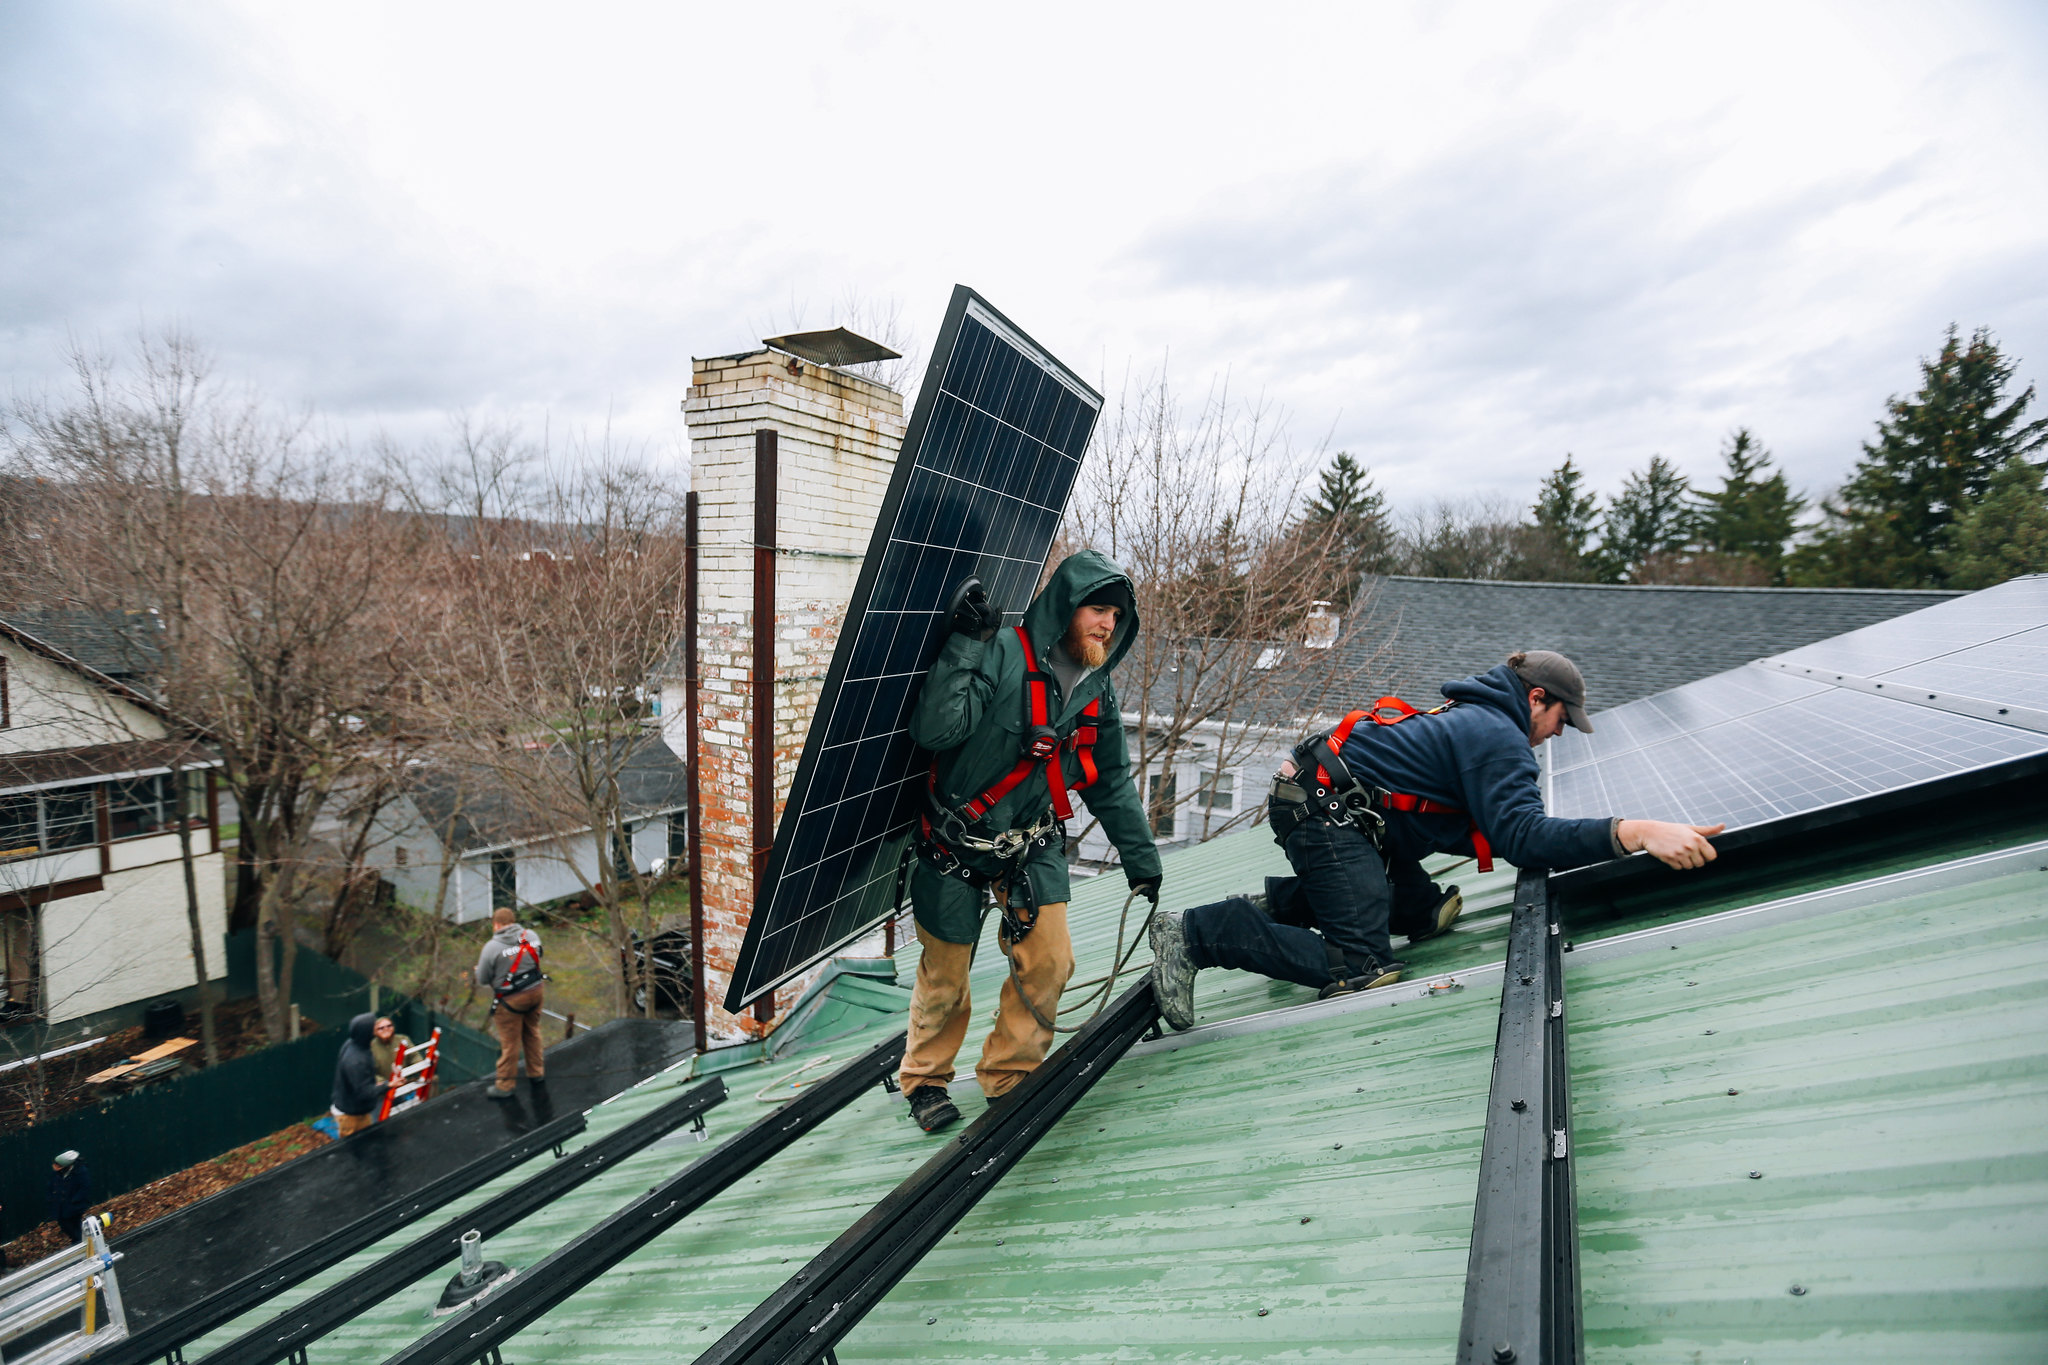 <p>Renewable energy is creating work, but policymakers need to address job quality, training and location. Photo by Stephen Yang/The Solutions Project.</p>